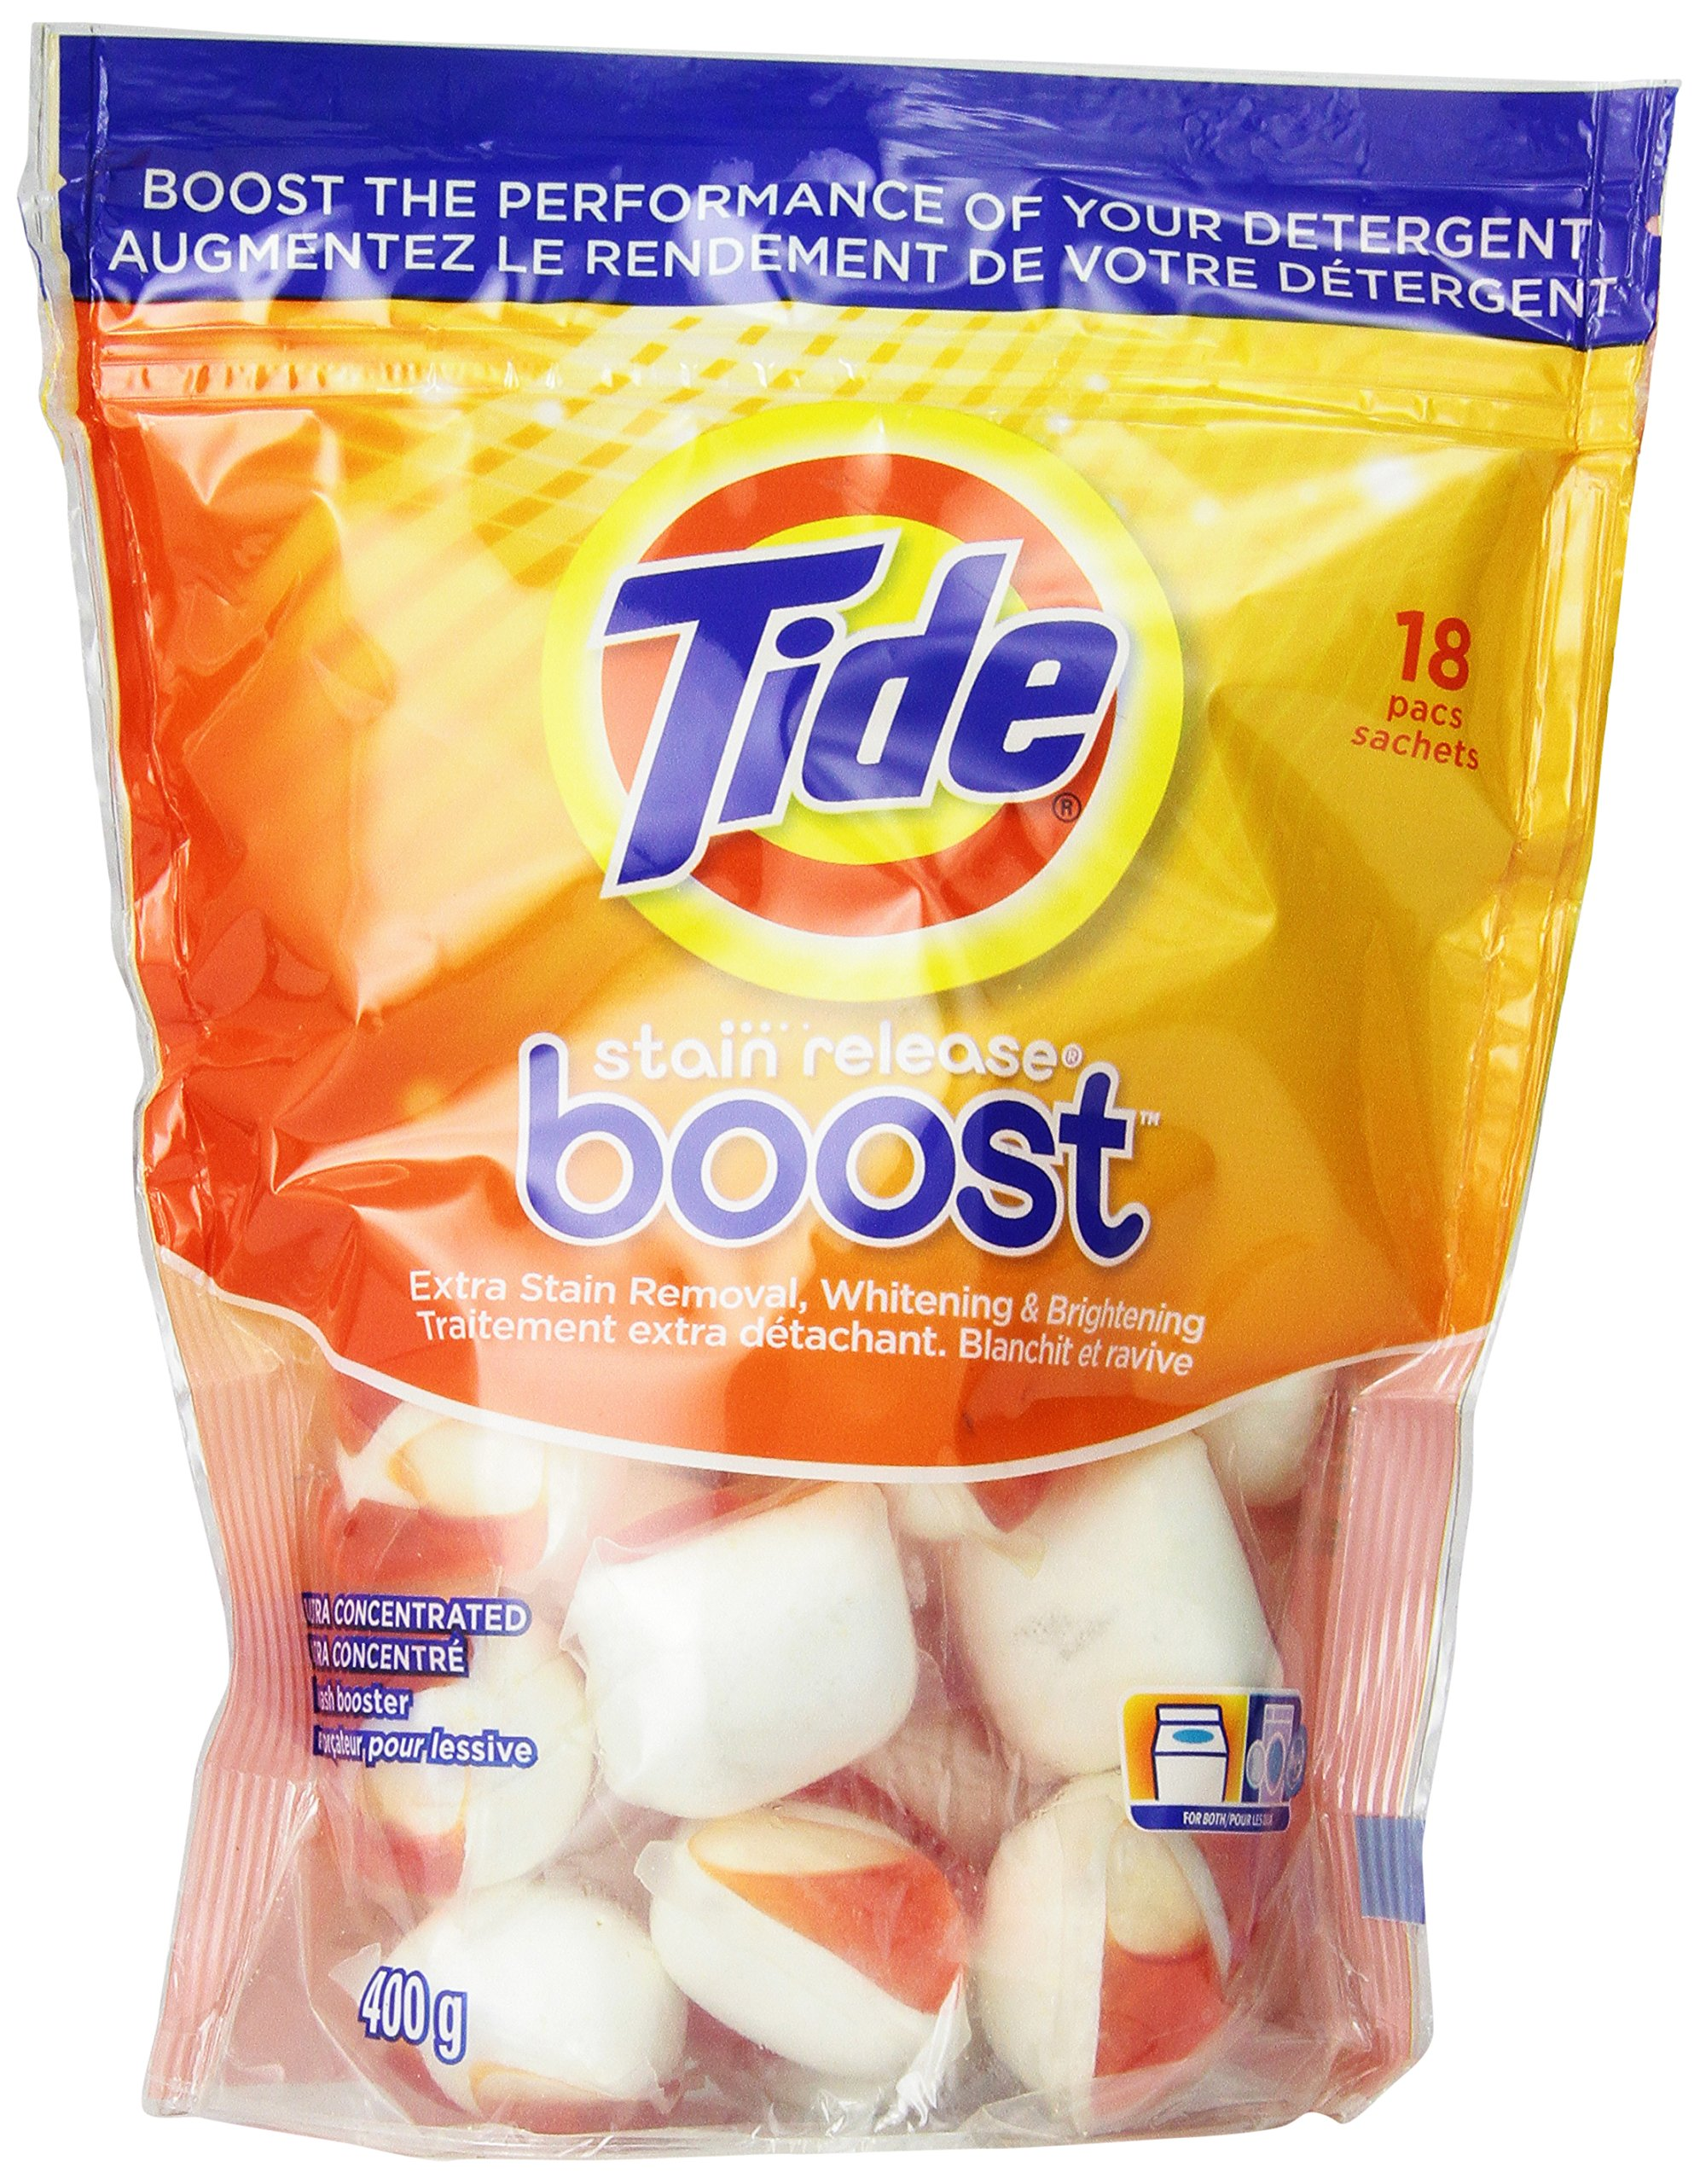 Tide Boost, 18 Pacs - Pack of 4